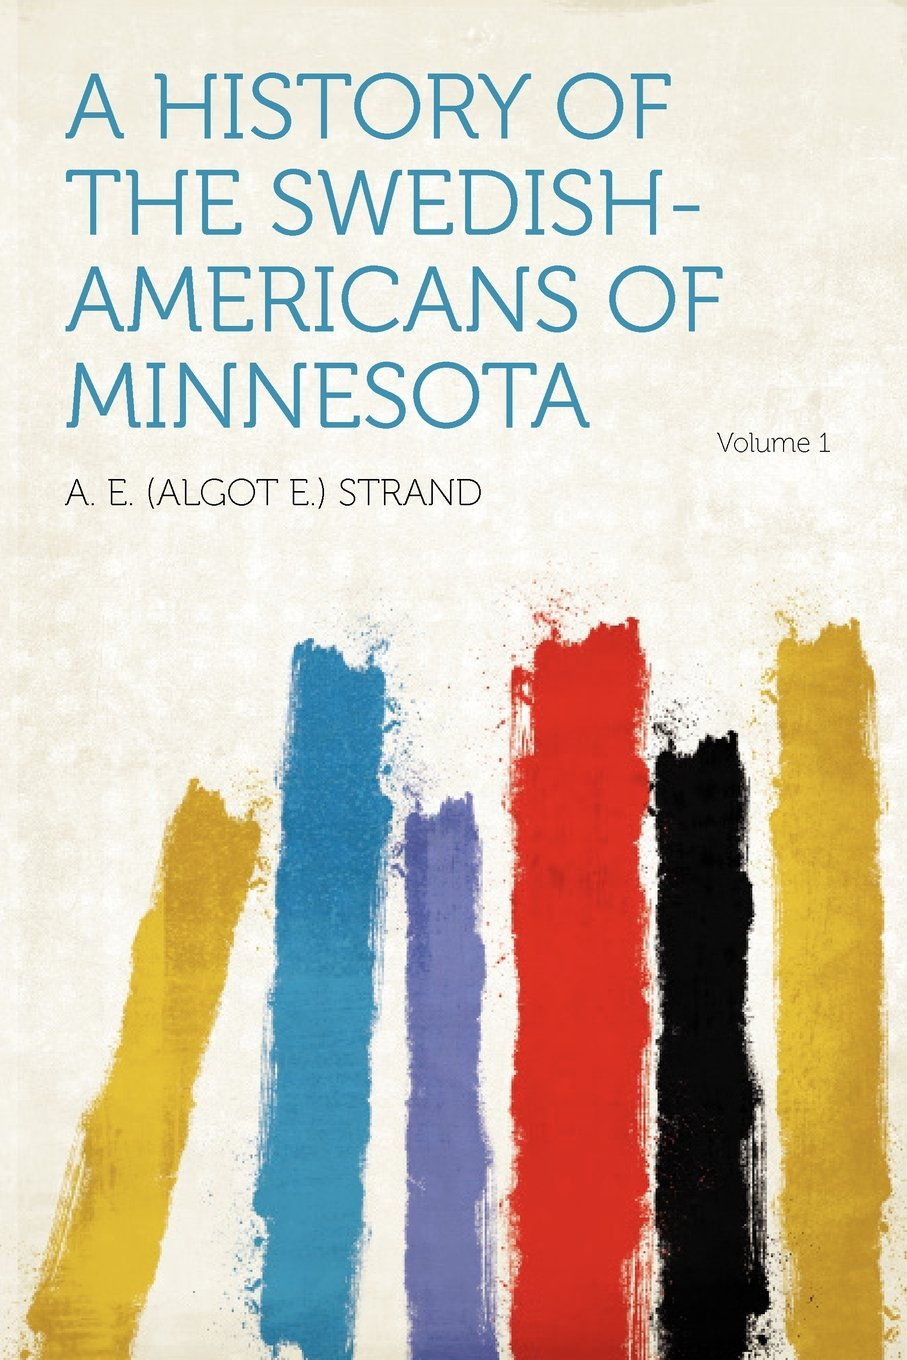 A History of the Swedish-Americans of Minnesota-click the link below to learn more about this book.